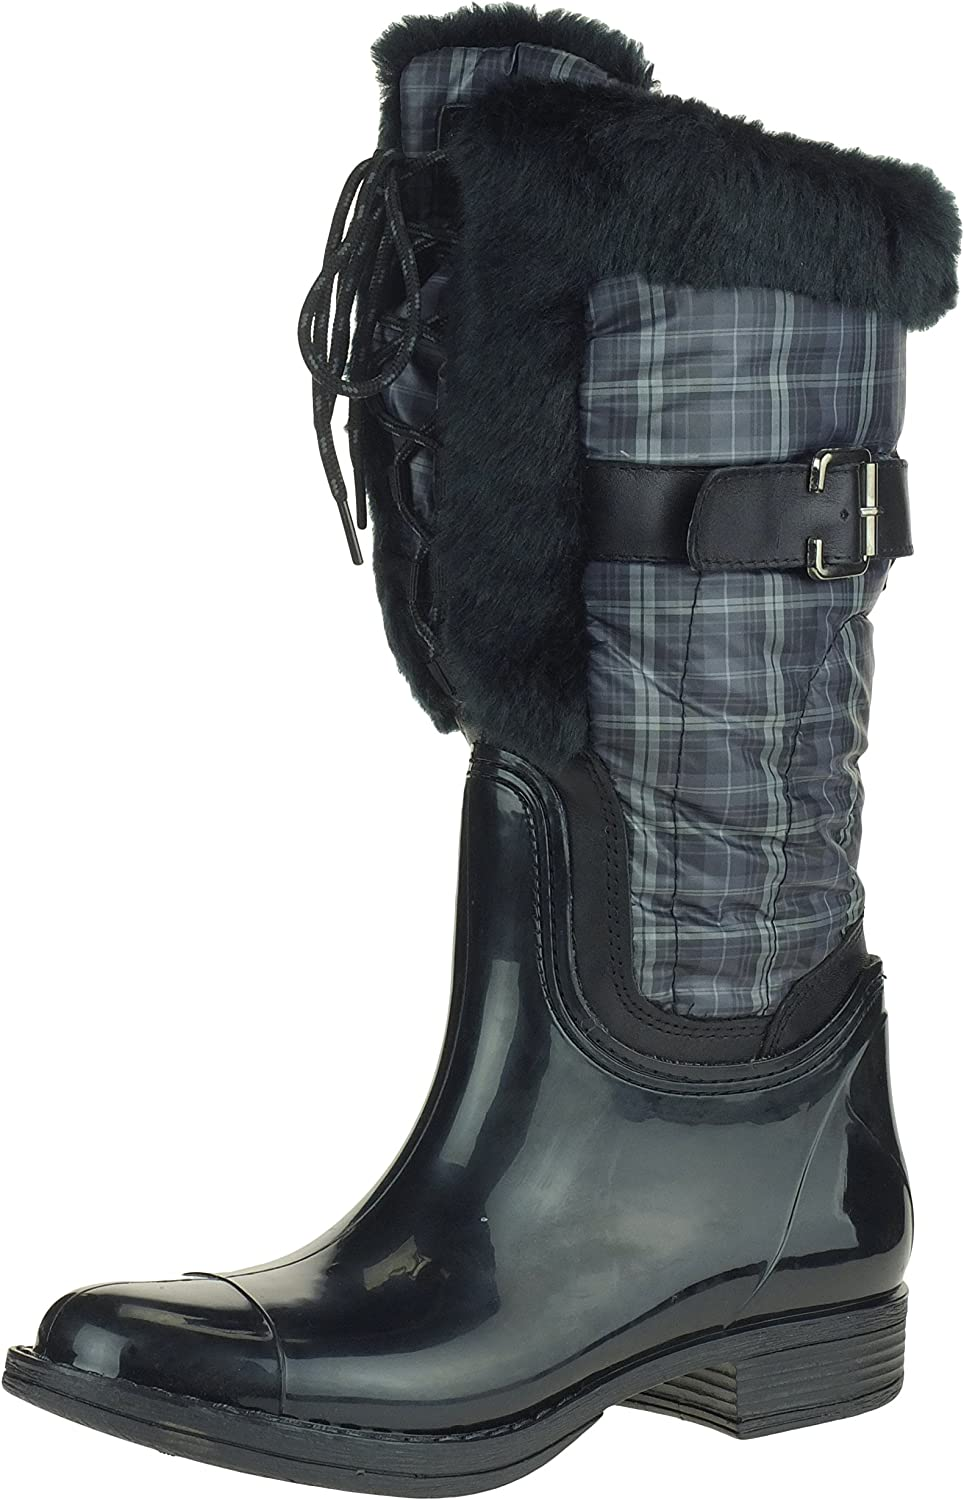 London Fog LORY II Women's Insulated Rain Boots with Faux Fur Trim, Black